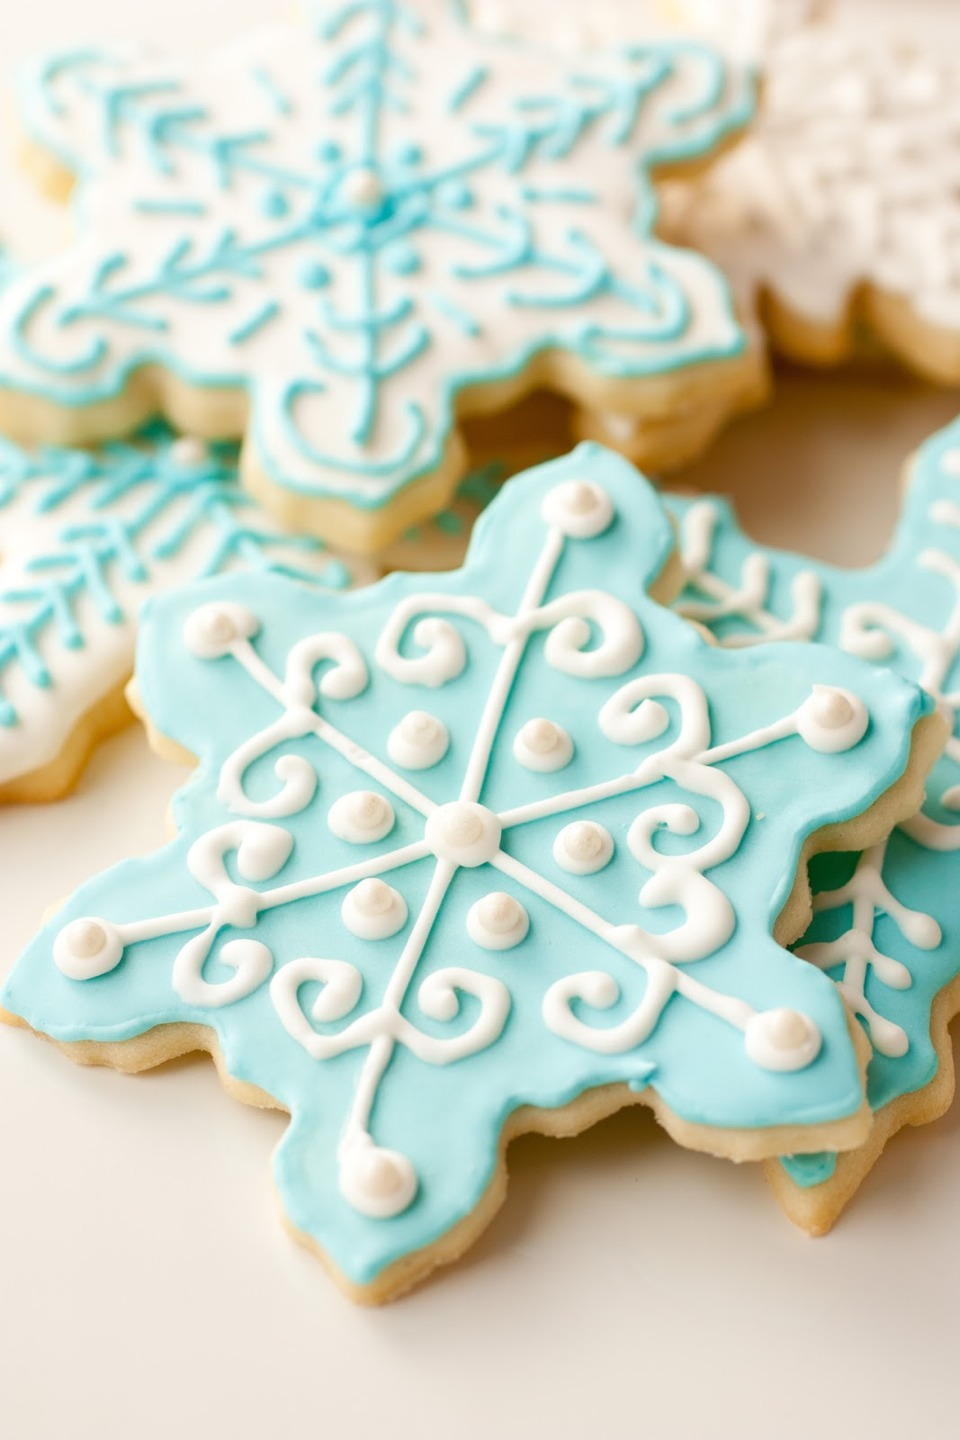 You can decorate the cookies and shape to whatever you want